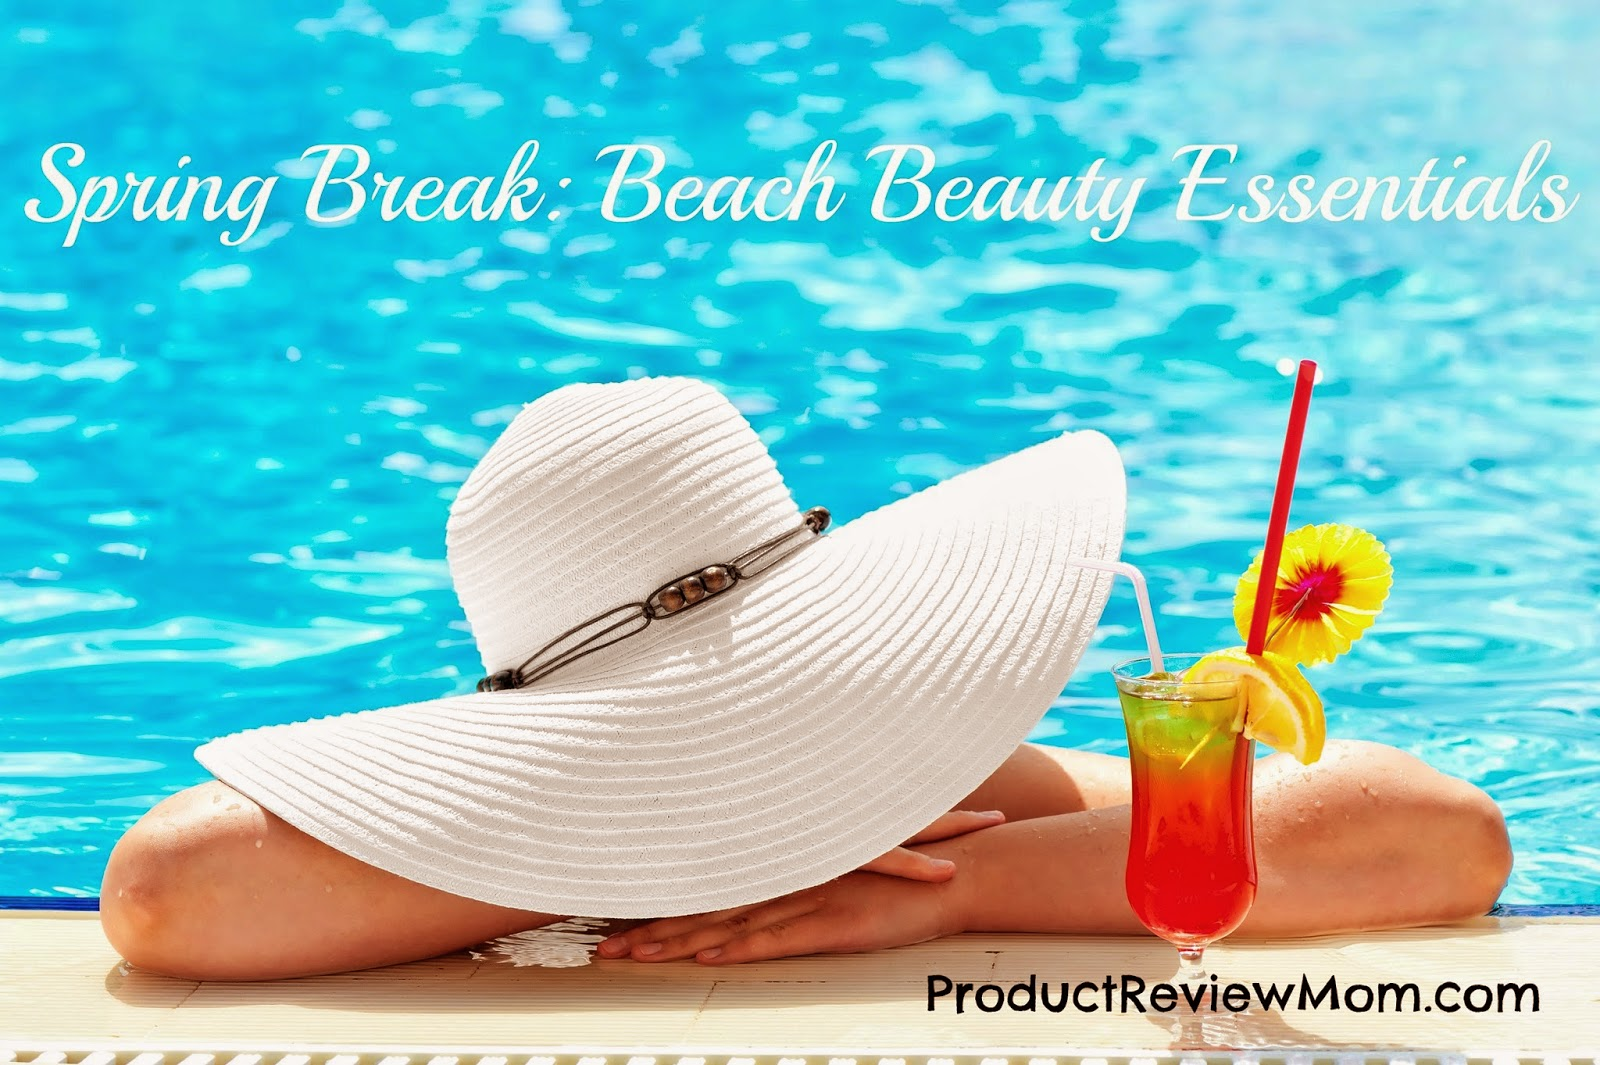 Spring Break: Beach Beauty Essentials  via www.productreviewmom.com